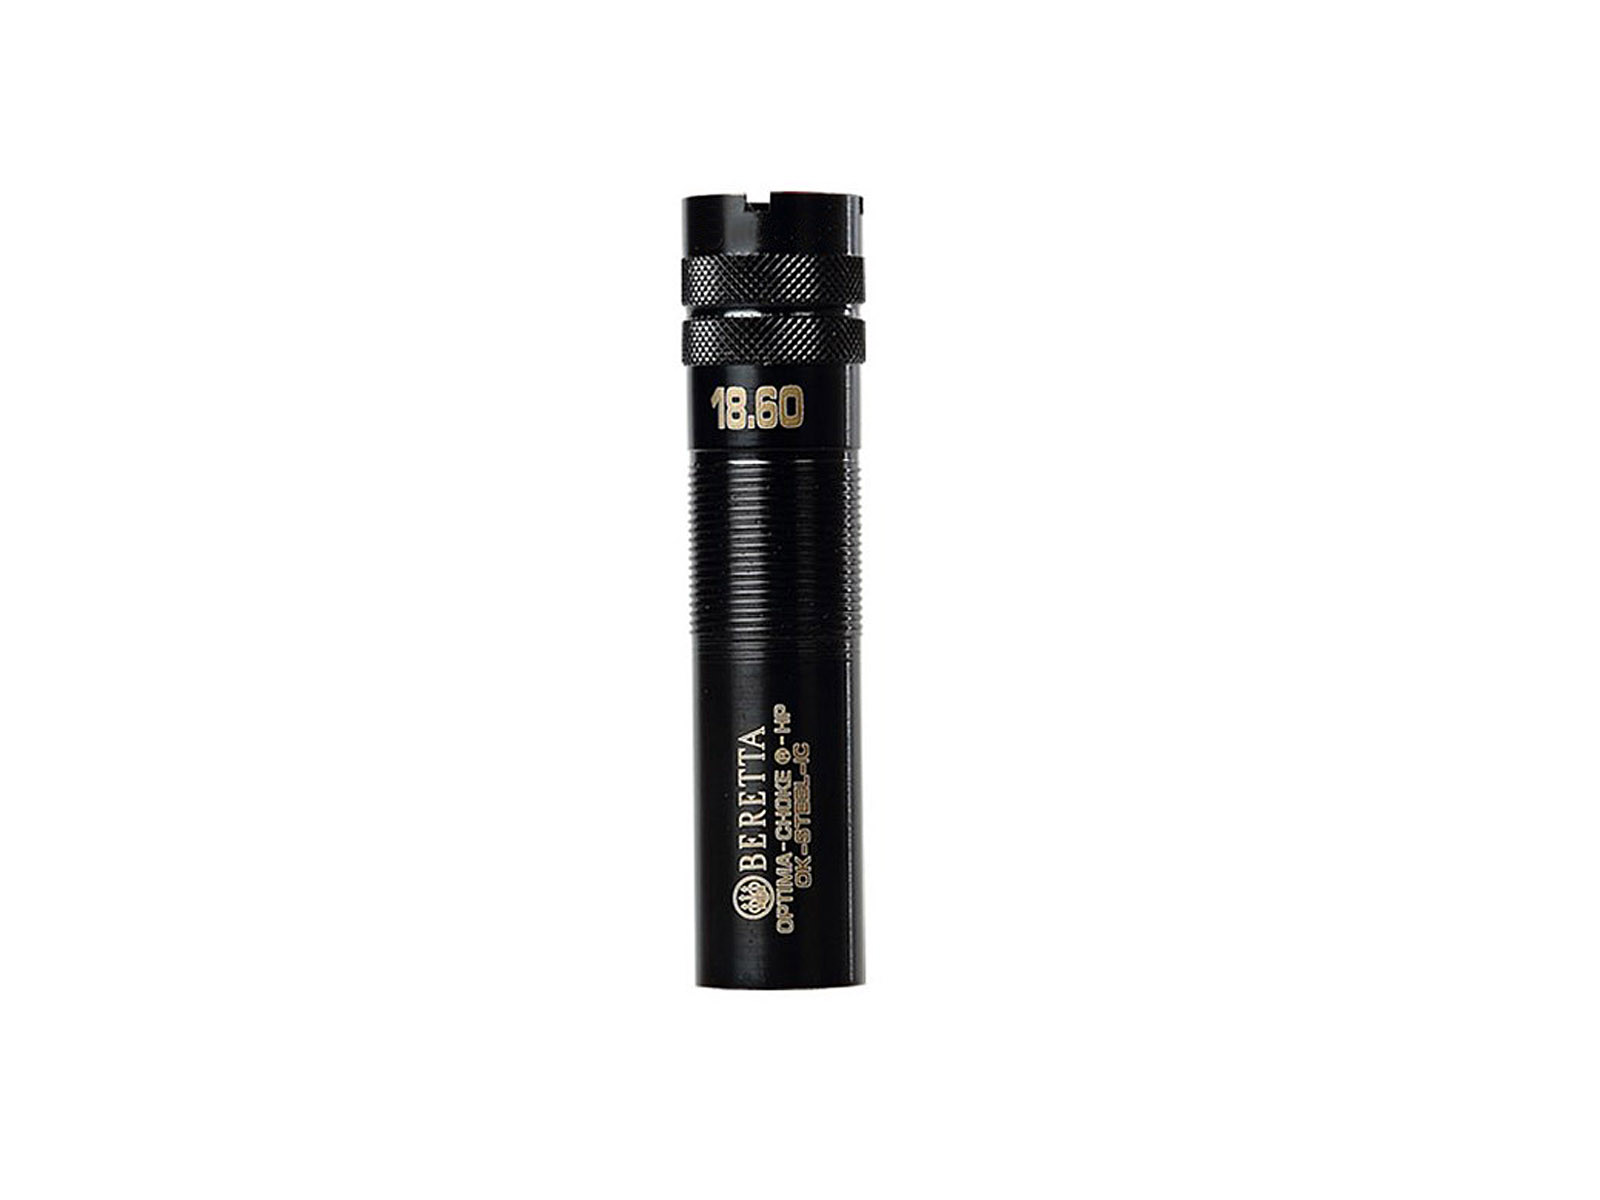 Beretta 12g Black HP Optima Extended